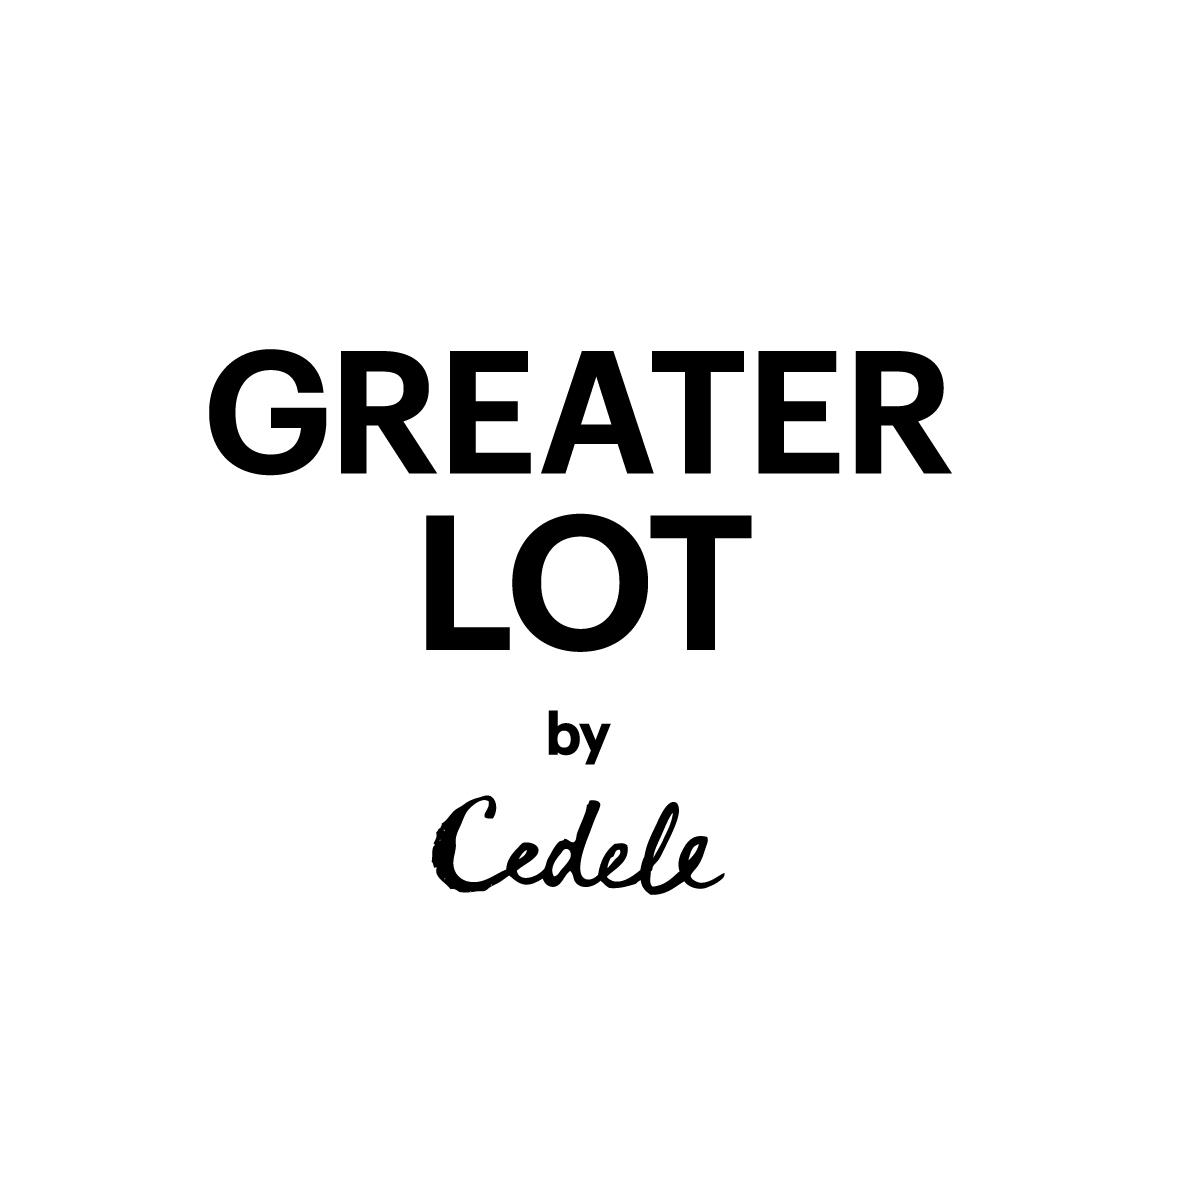 Greater Lot by Cedele